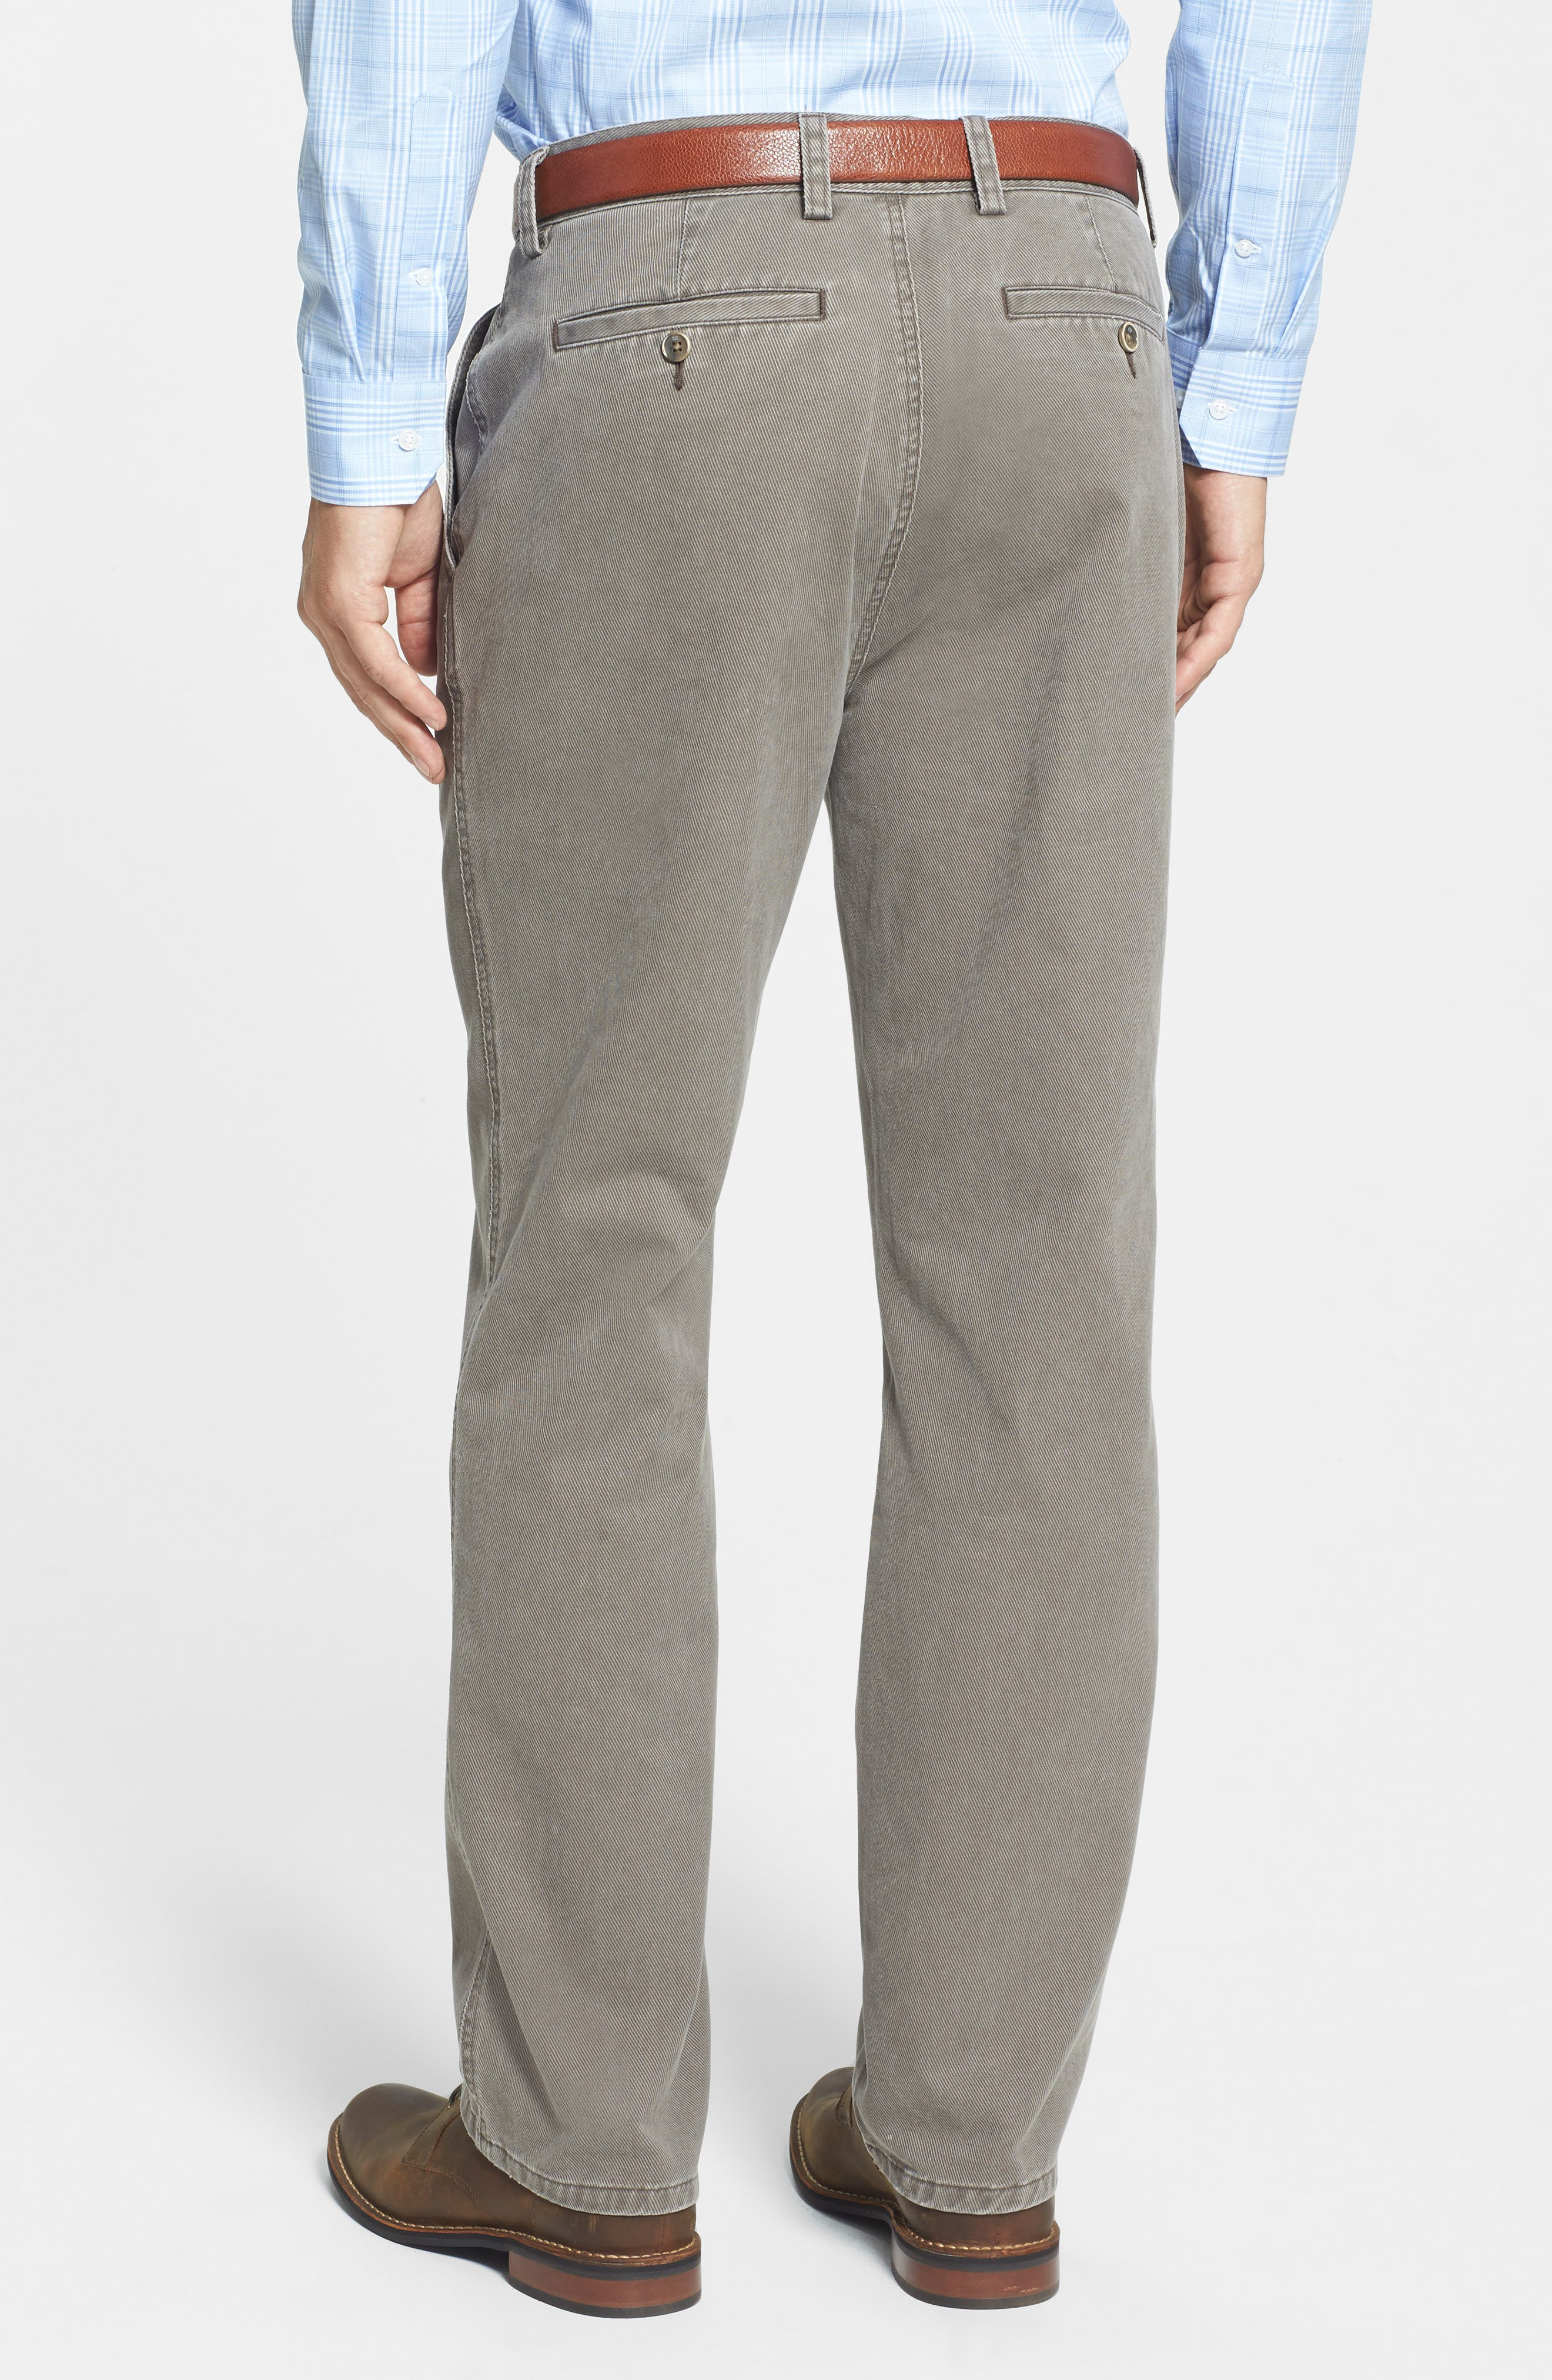 Curtis Flat Front Five-Pocket Cotton Twill Pants,                             Alternate thumbnail 3, color,                             218